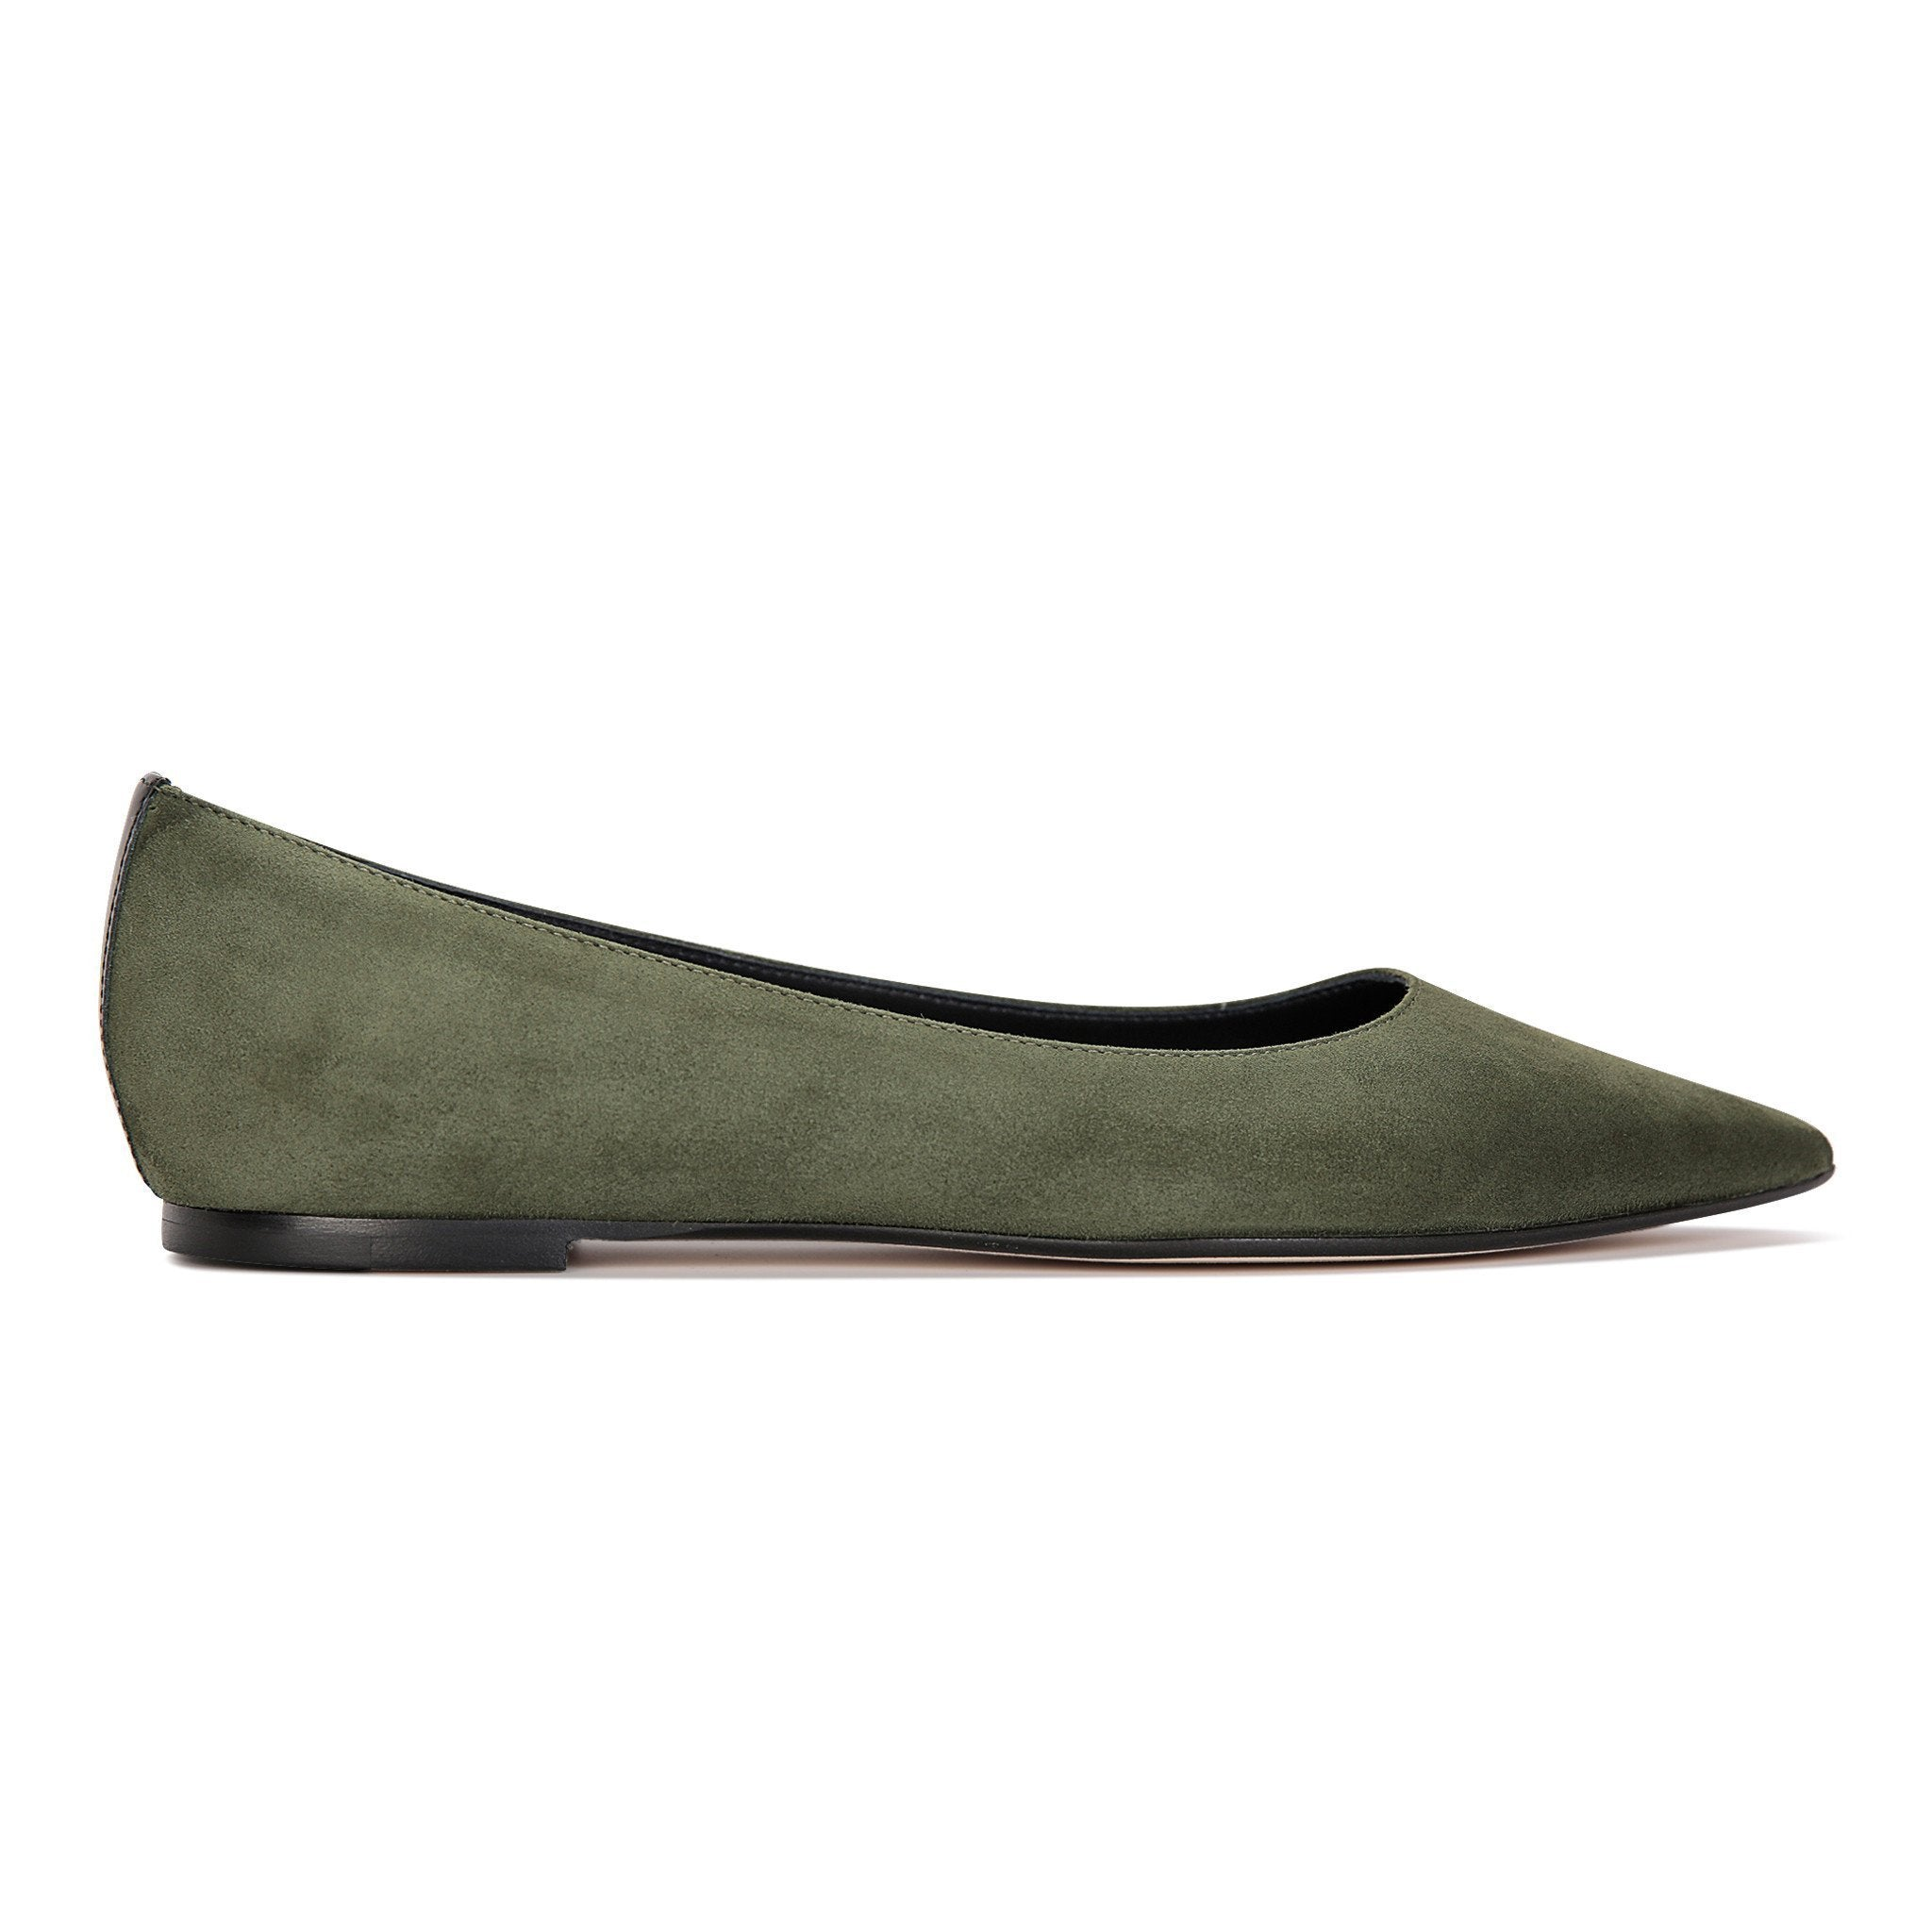 COMO - Velukid Moss + Patent Nero, VIAJIYU - Women's Hand Made Sustainable Luxury Shoes. Made in Italy. Made to Order.